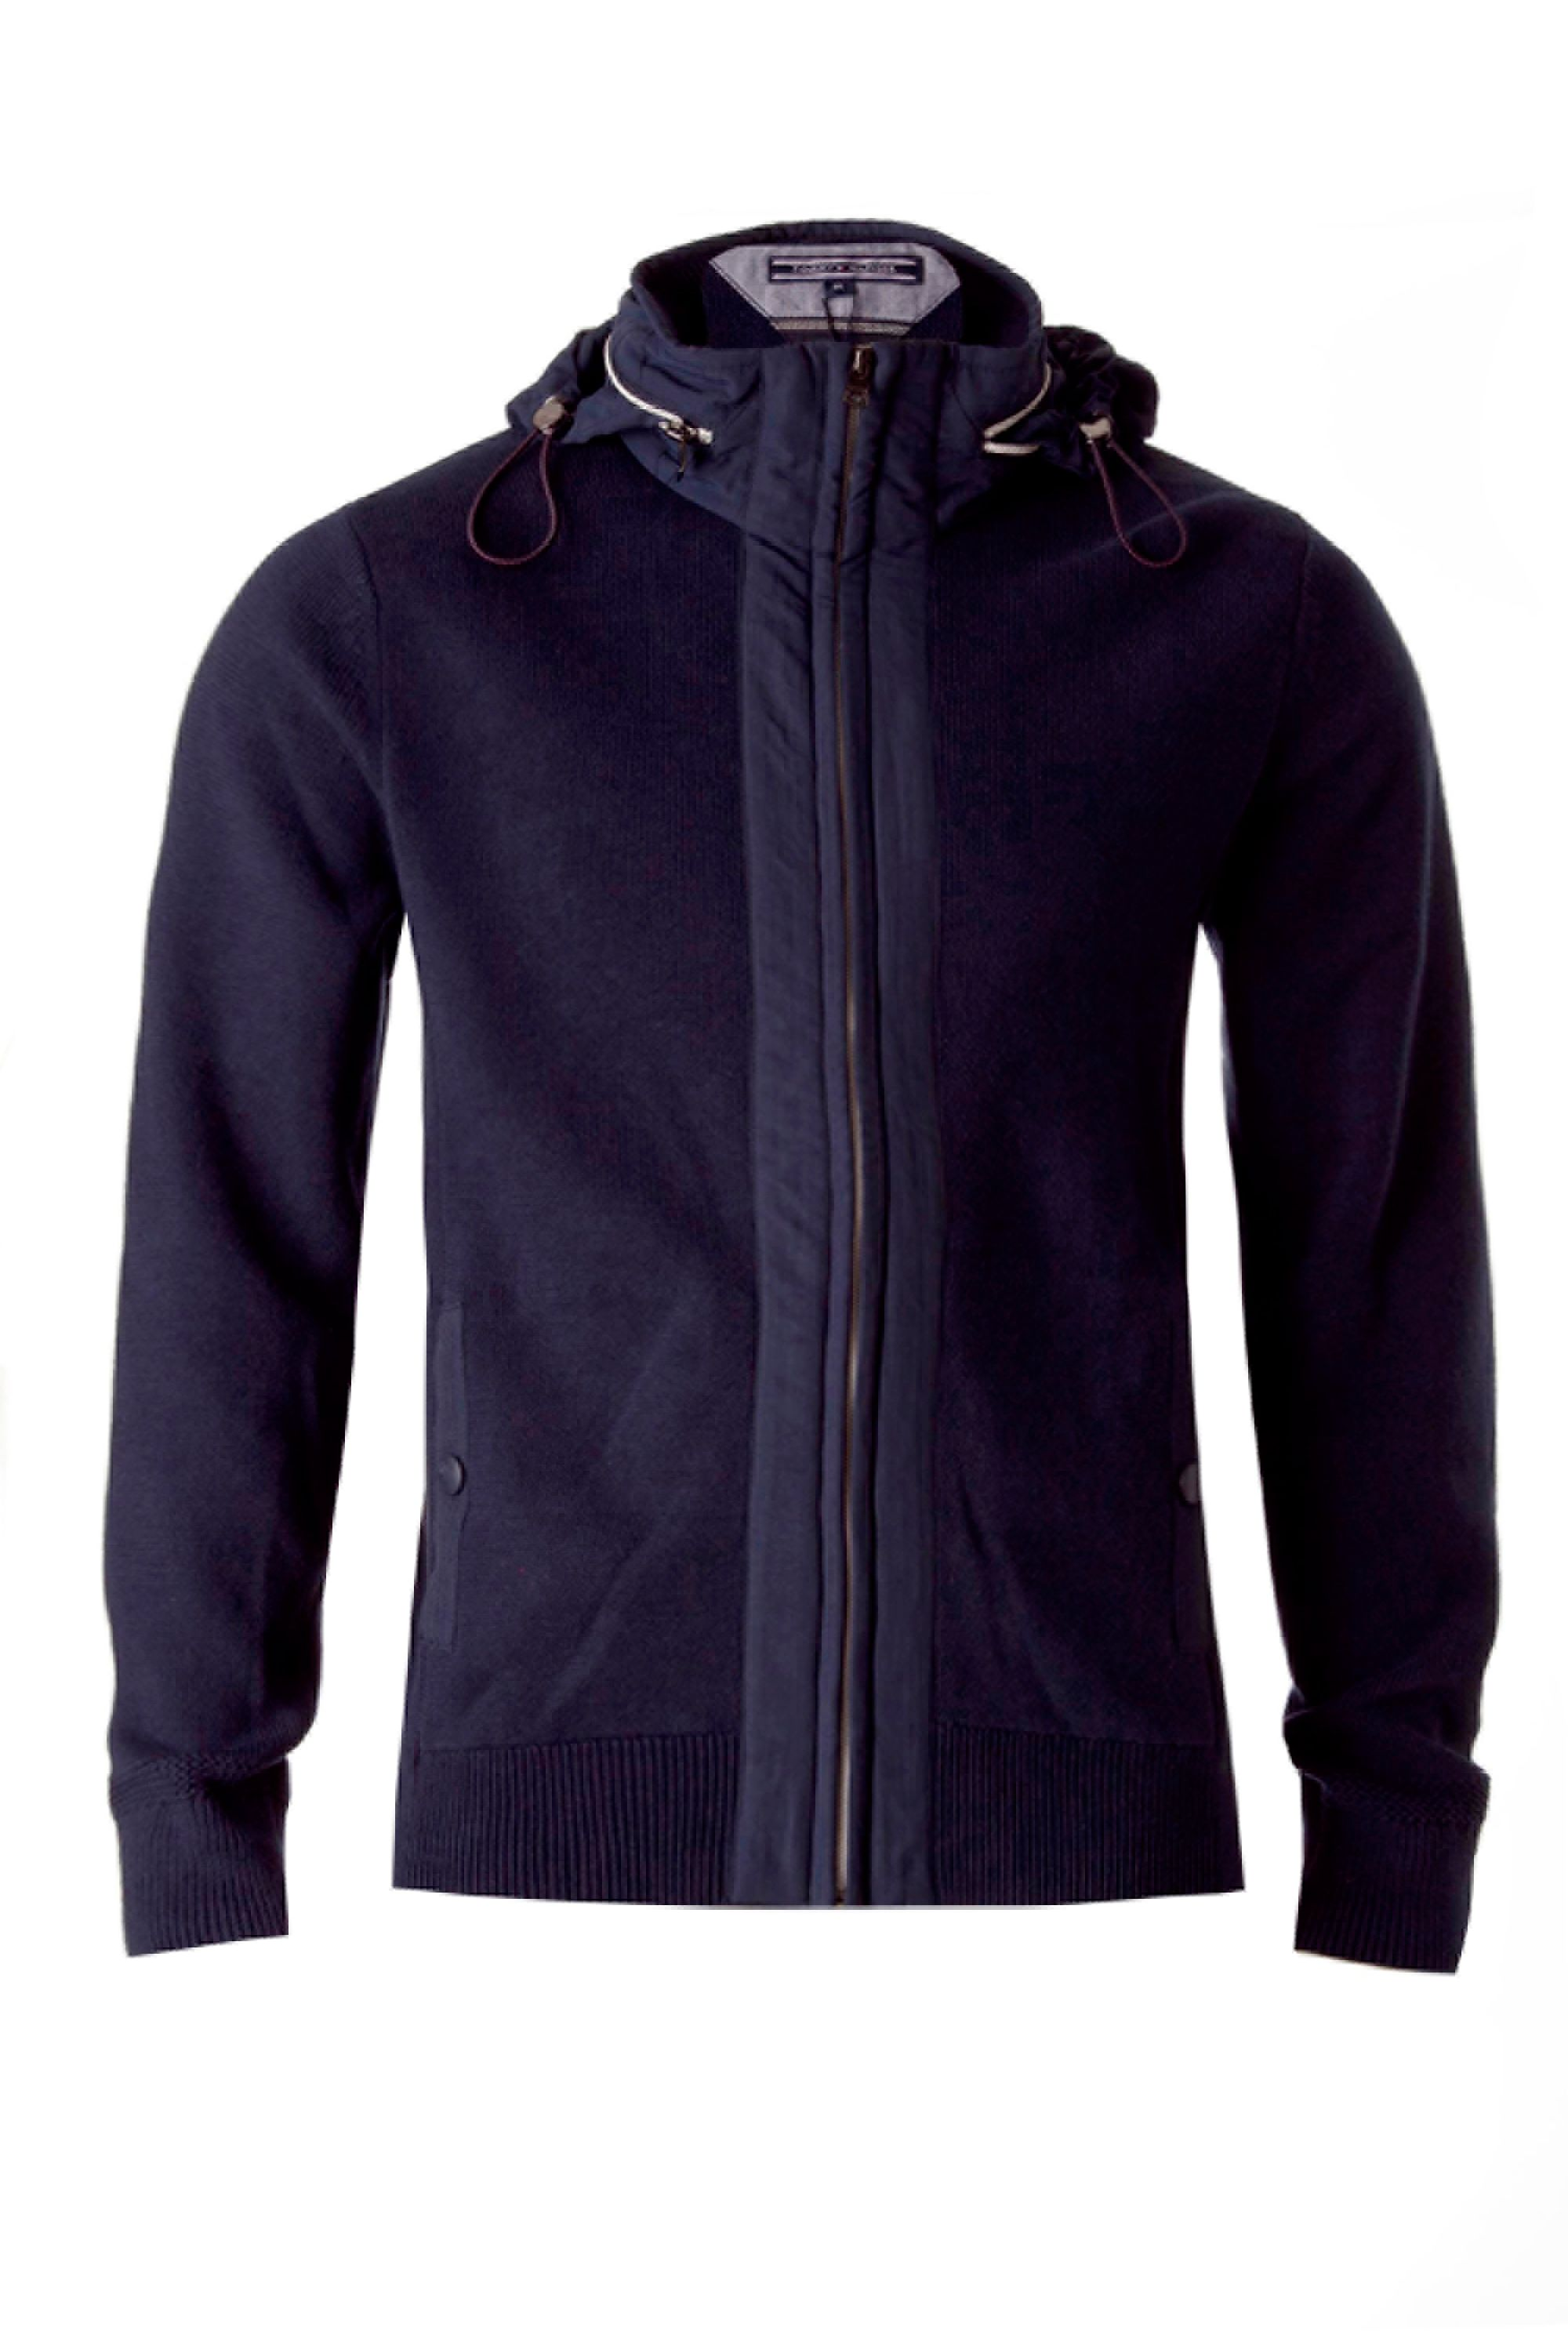 Denton hooded top